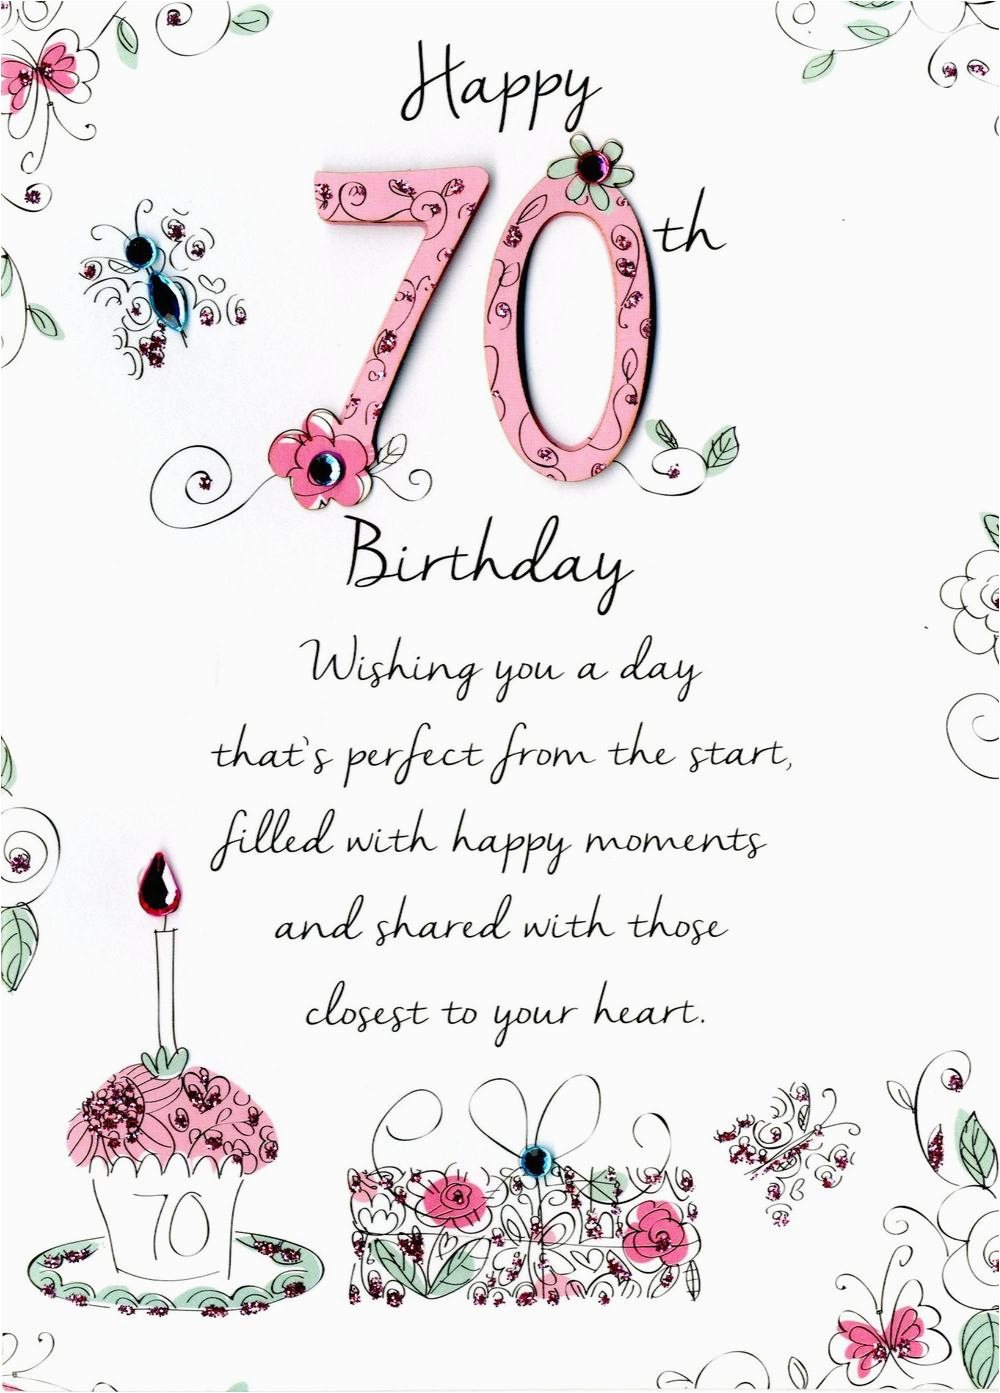 kcsnjt032 female 70th birthday greeting card second nature just to say cards